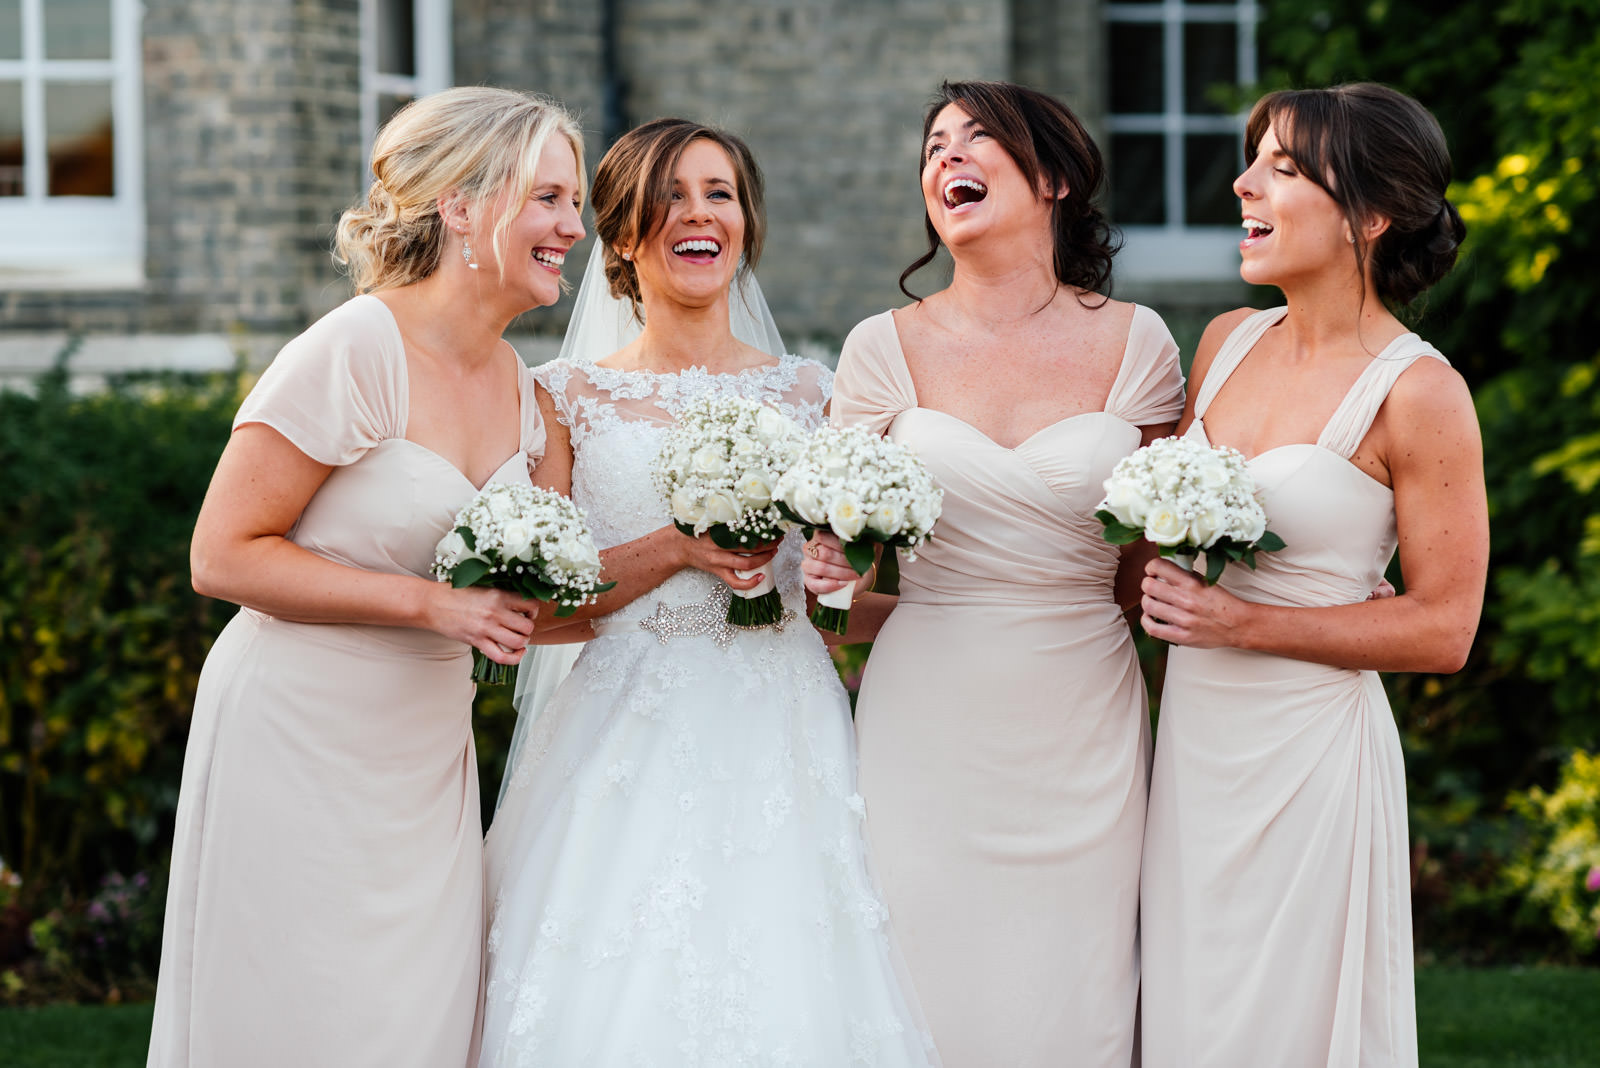 Bridesmaids fun group photo